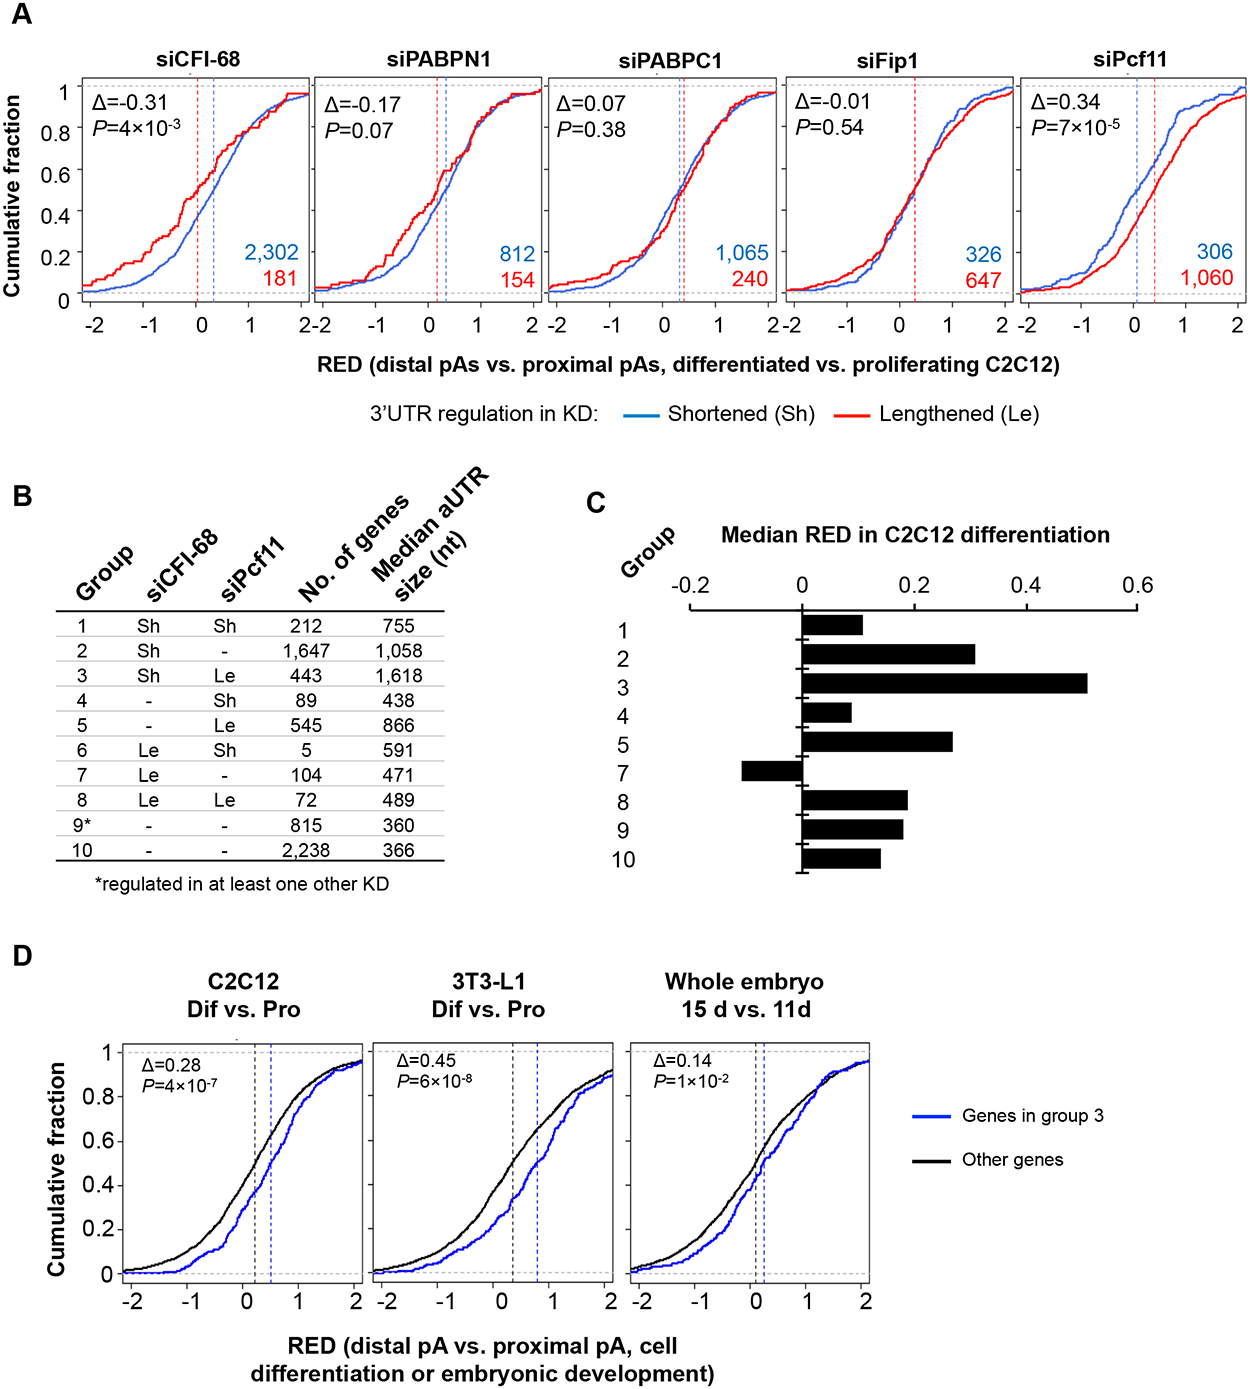 Comparison of APA events regulated by the five C/P factors with those regulated in C2C12 differentiation.